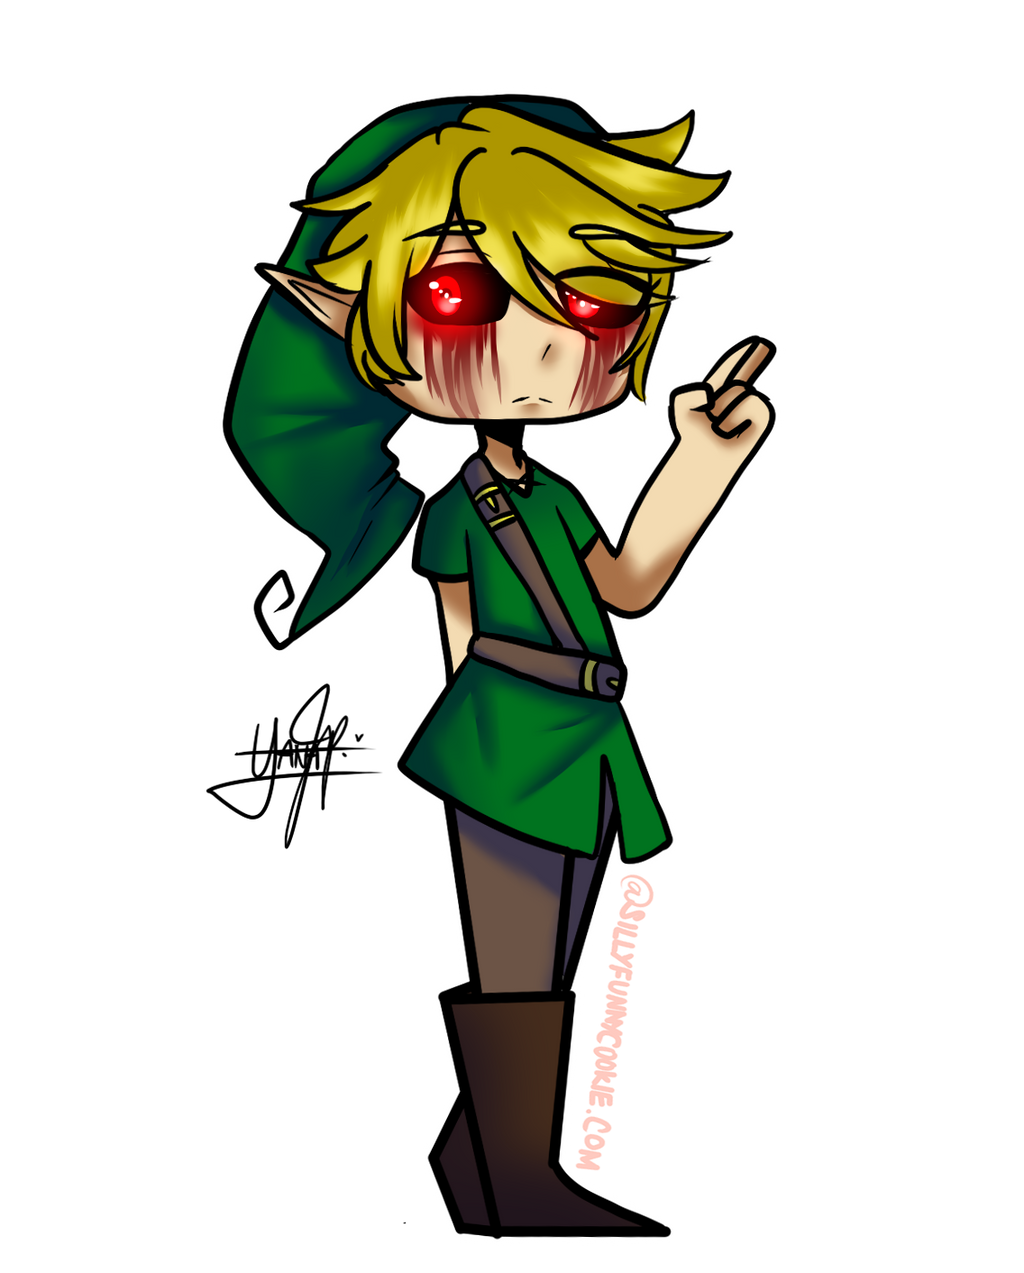 CREEPYPASTA Ben Drowned by SillyFunnyCookie on DeviantArt